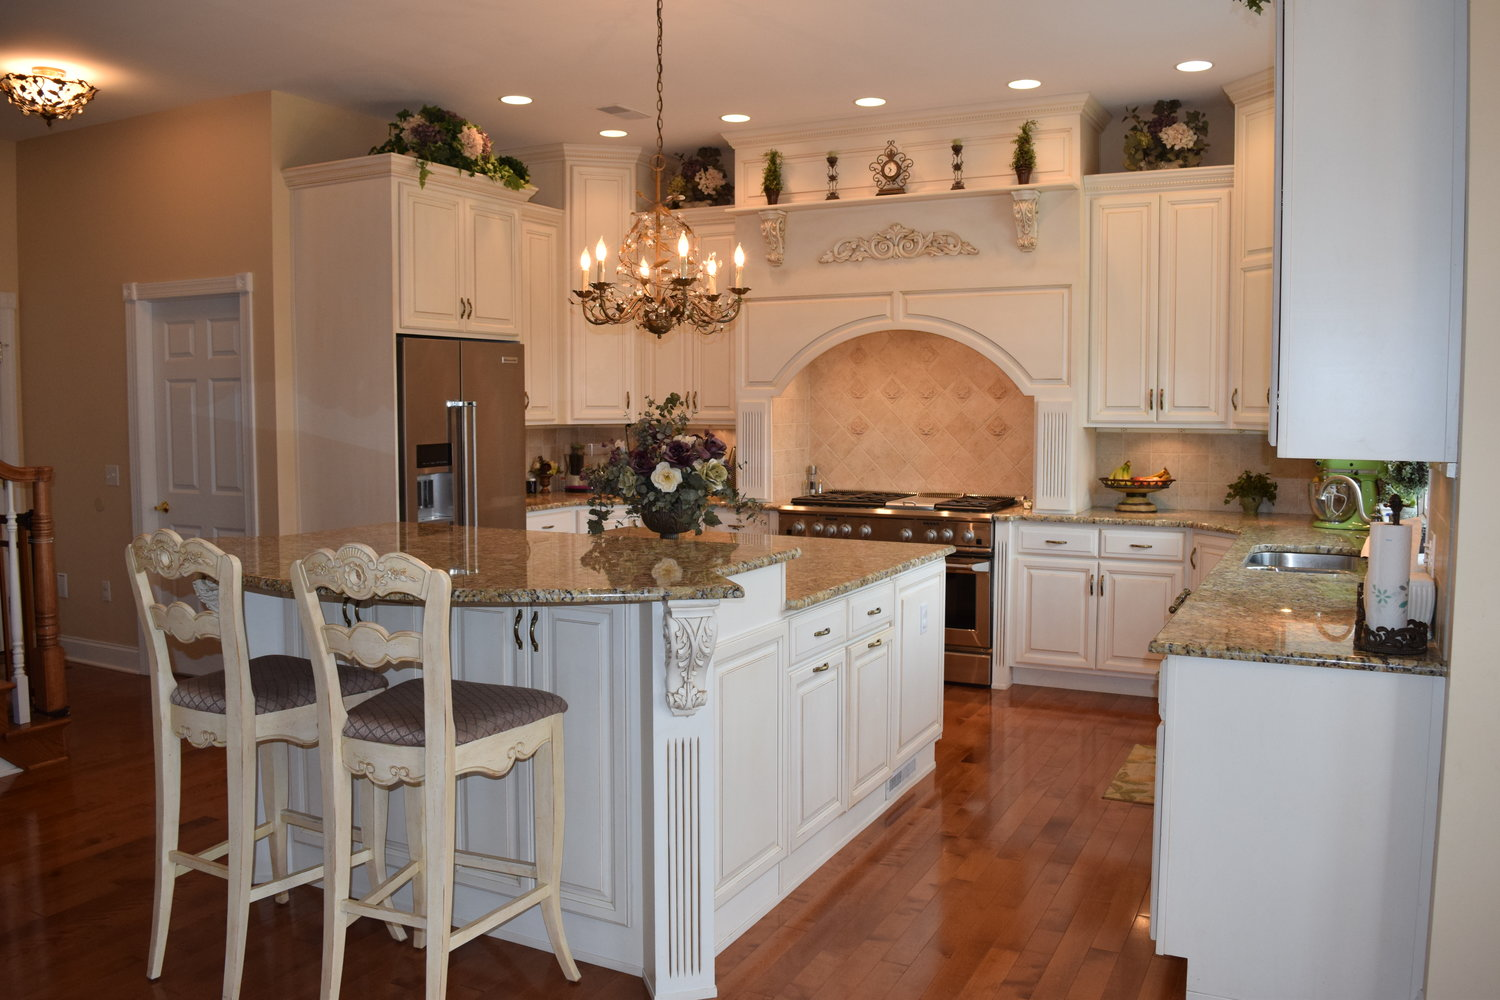 Blue Mountain Woodworking Is A Family Business With Wealth Of Experience In Building And Designing Fine Custom Cabinetry For All Areas Your Home